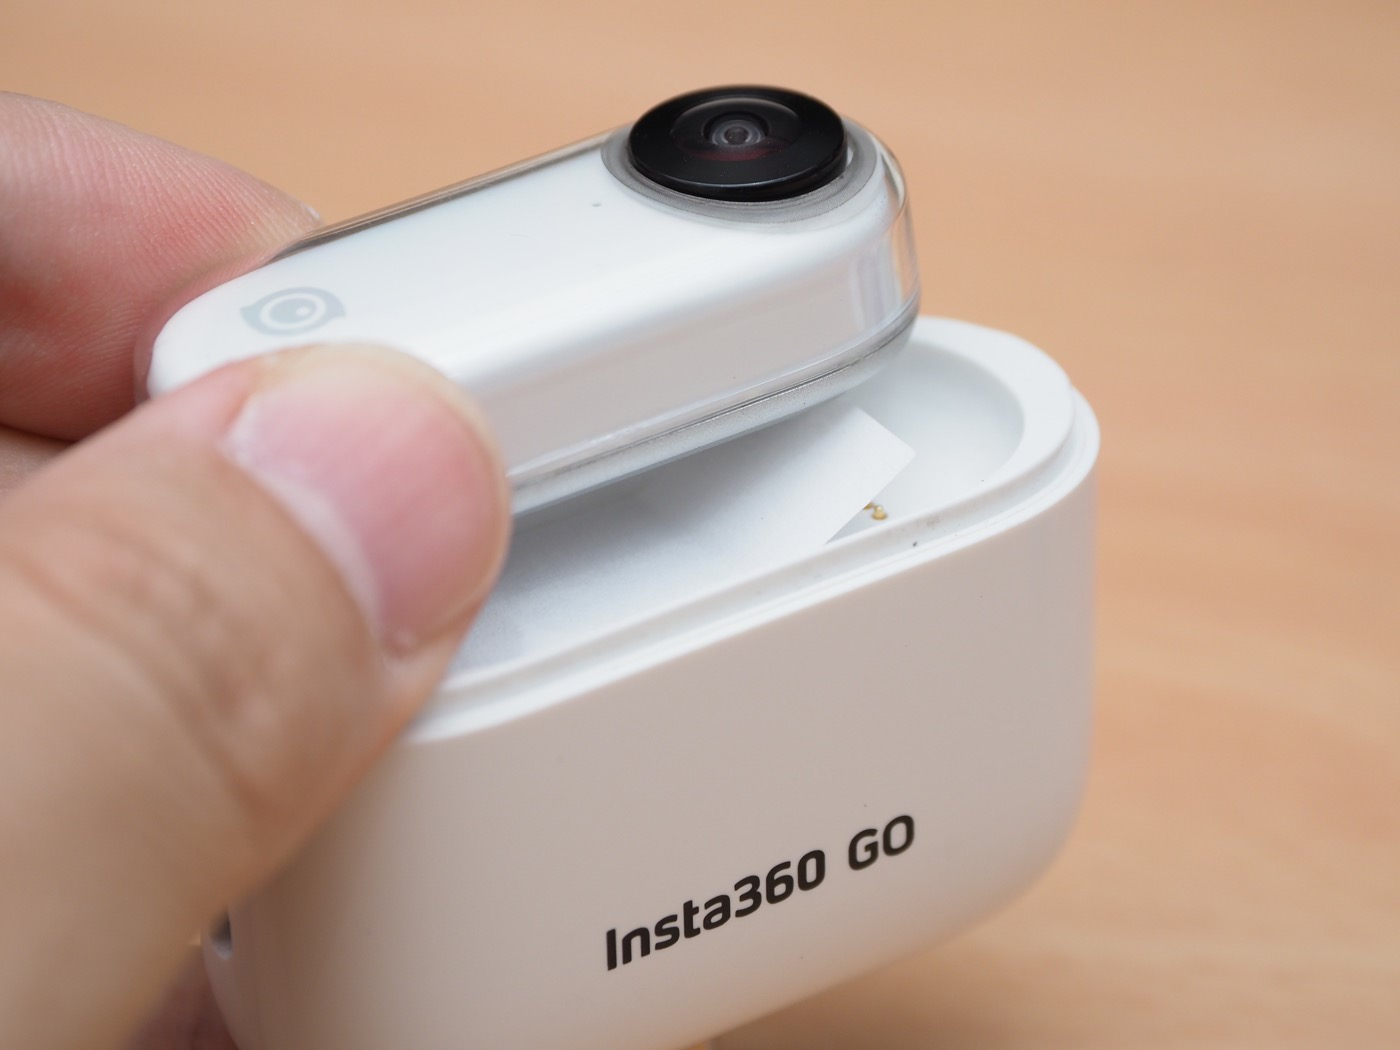 causes-of-insta360-go-battery-drain-and-temporary-measures_00006